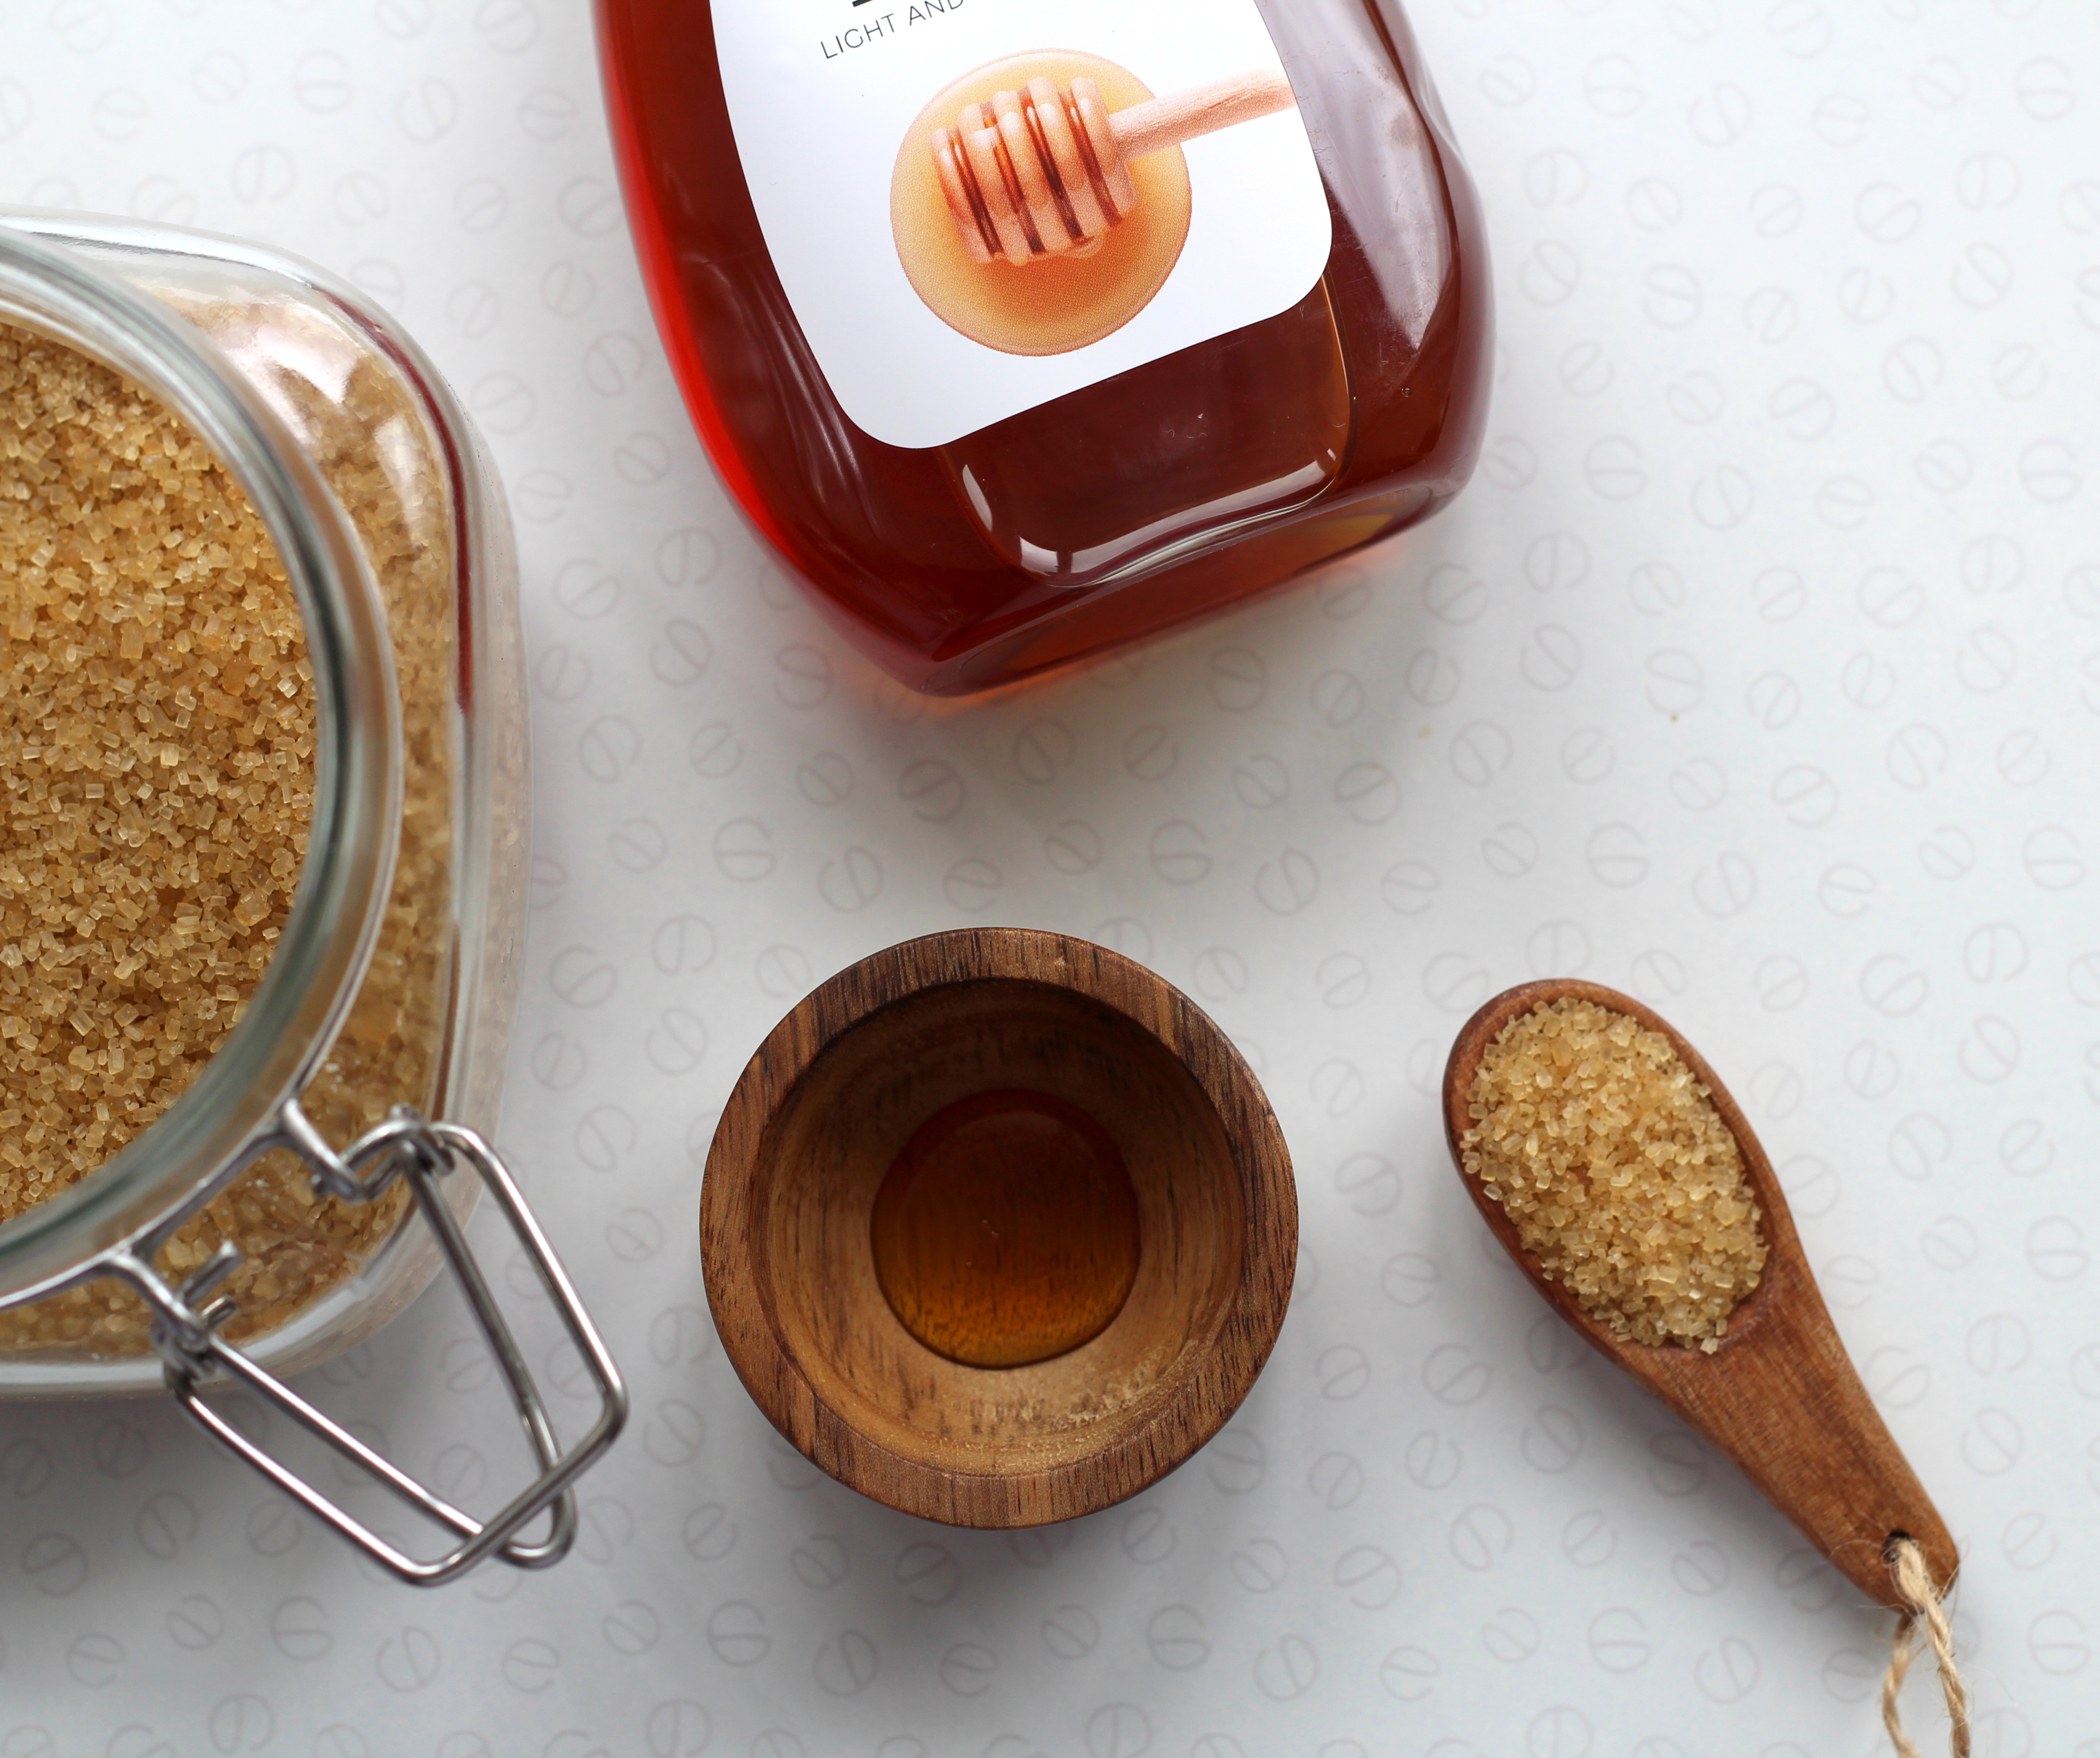 DIY face scrub and mask for soft skin